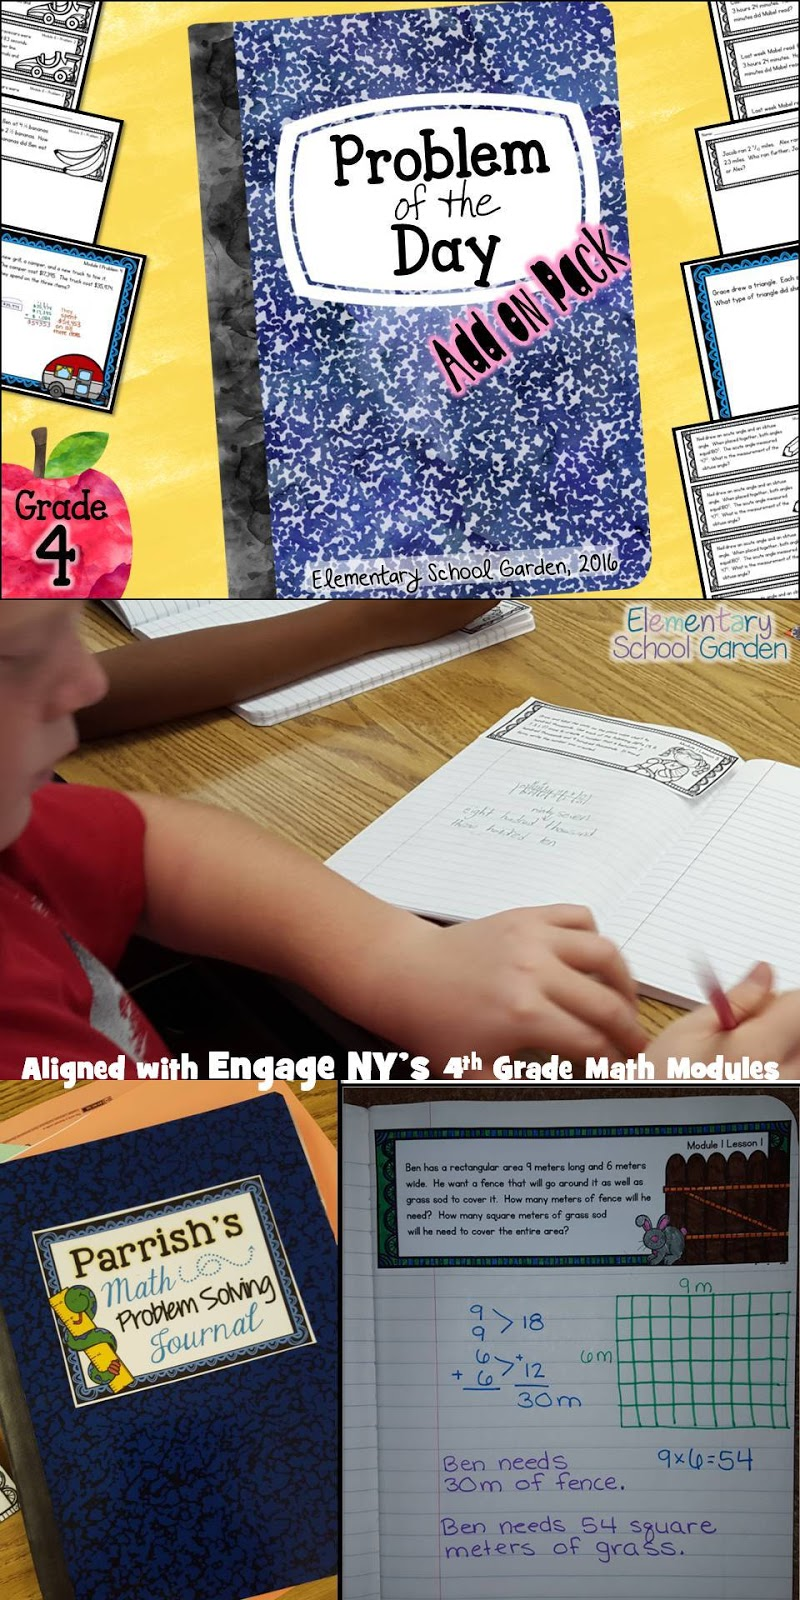 Worksheet Math Problem Of The Day 4th Grade elementary school garden problem of the day aligned with engage nys 4th grade math module application problems